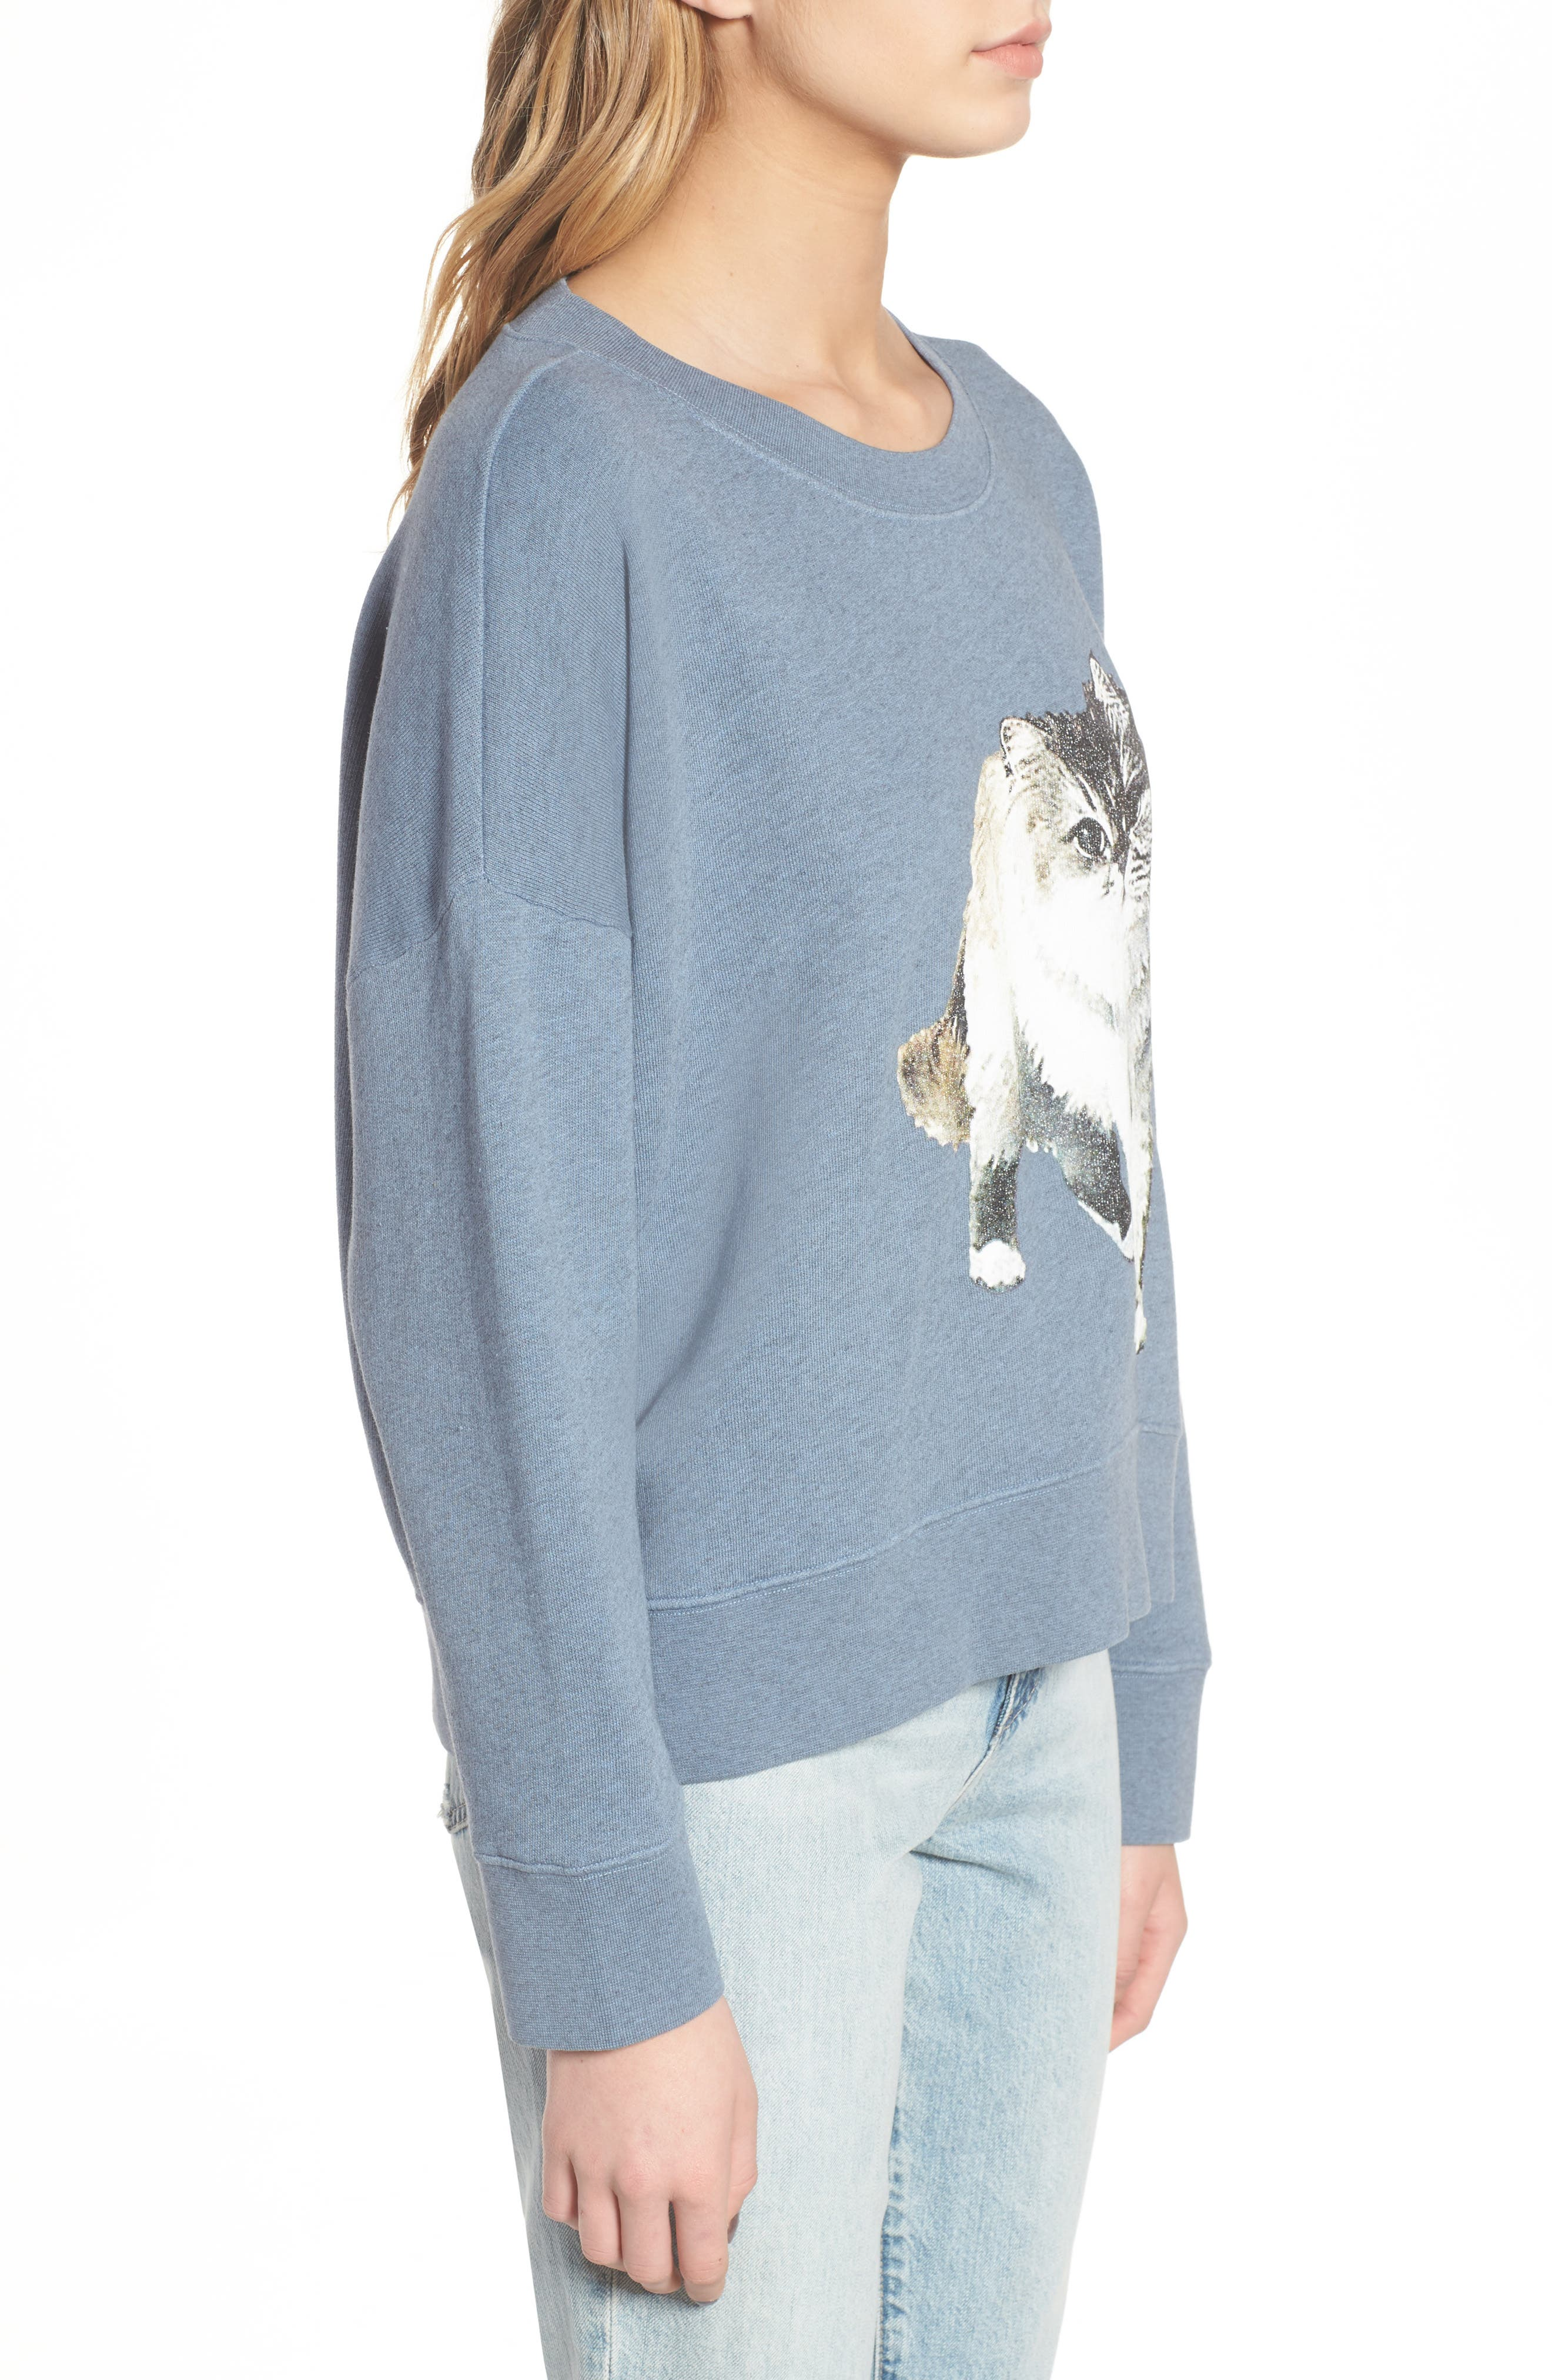 Kyoto Sweatshirt,                             Alternate thumbnail 3, color,                             Blue